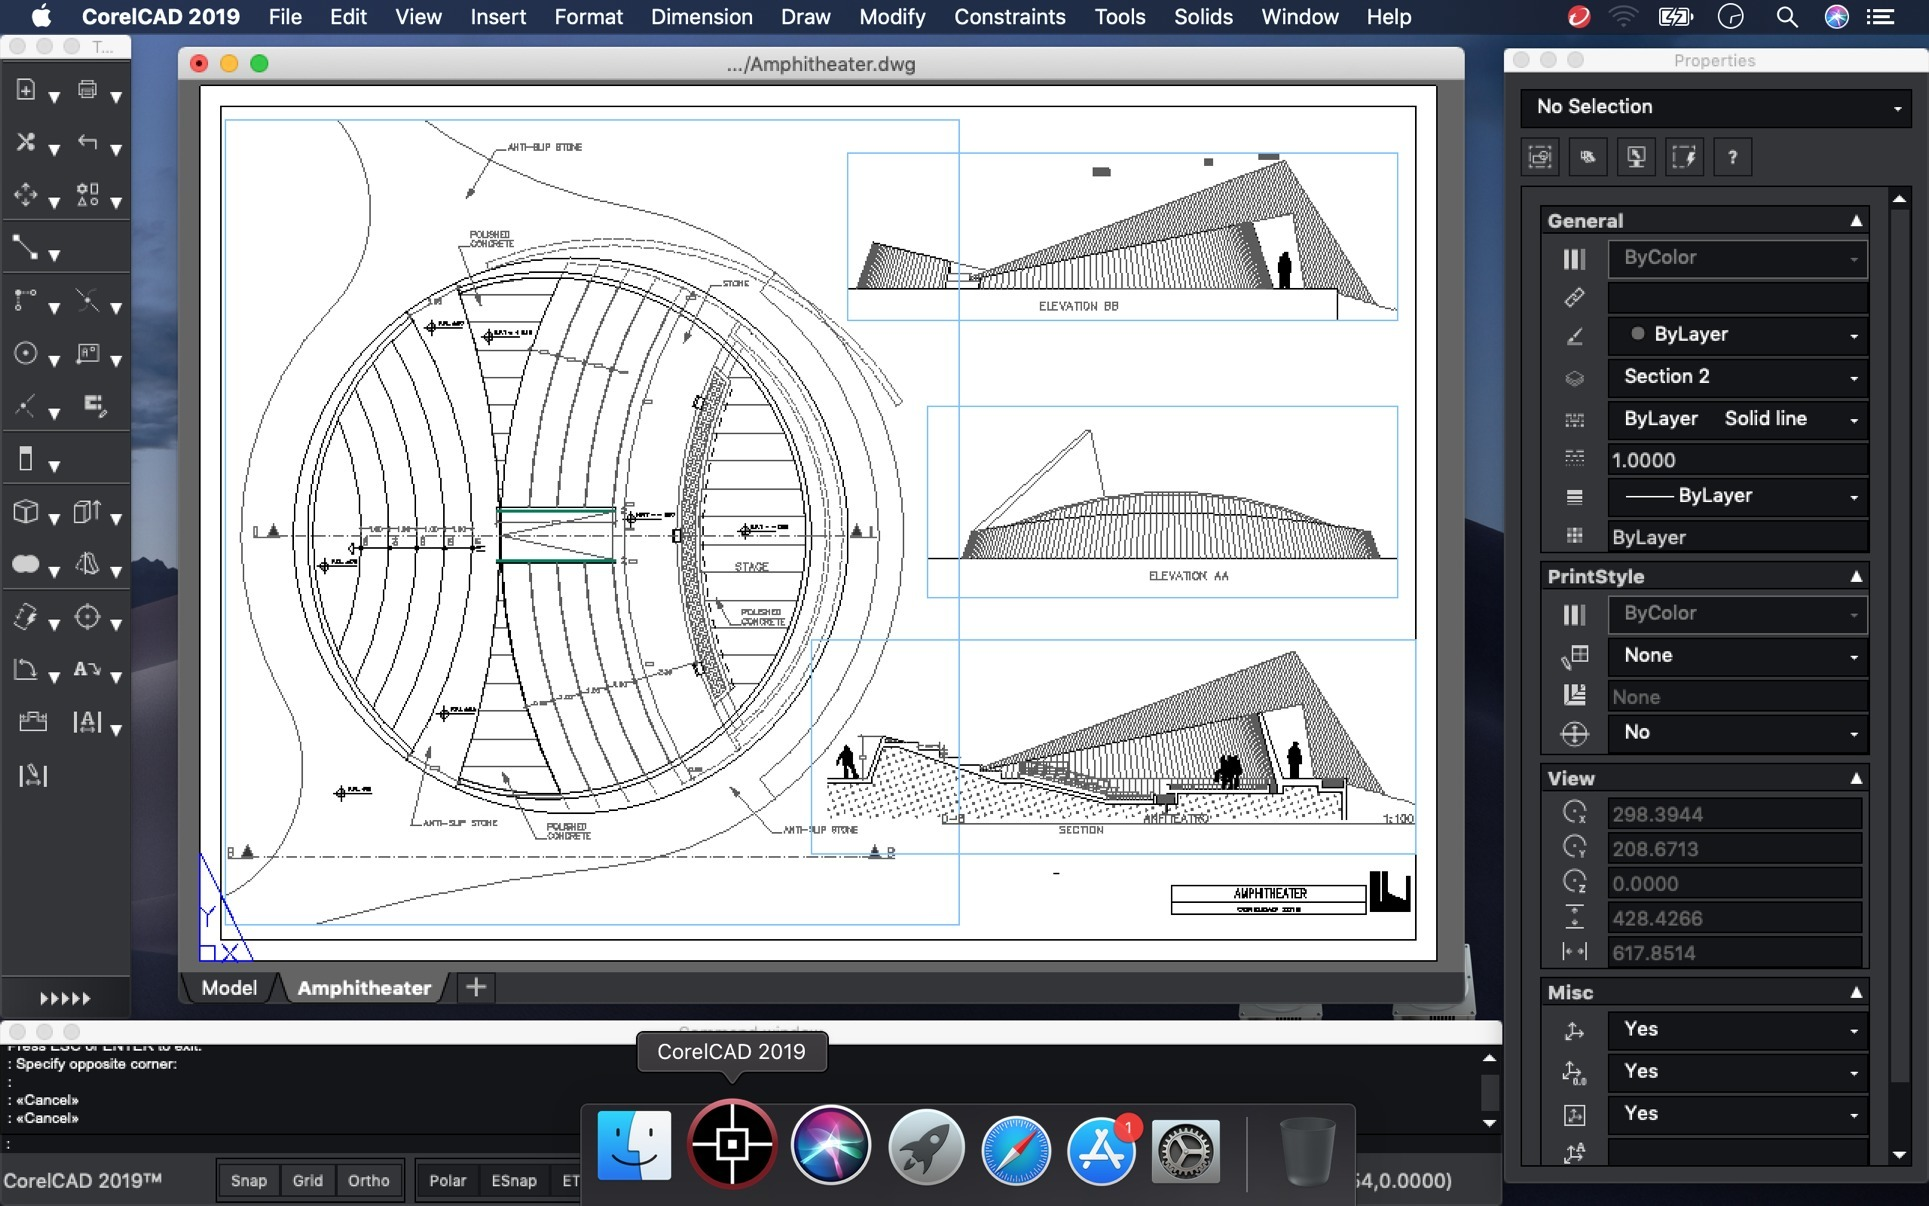 CAD Software for 3D Drawing, Design & Printing – CorelCAD